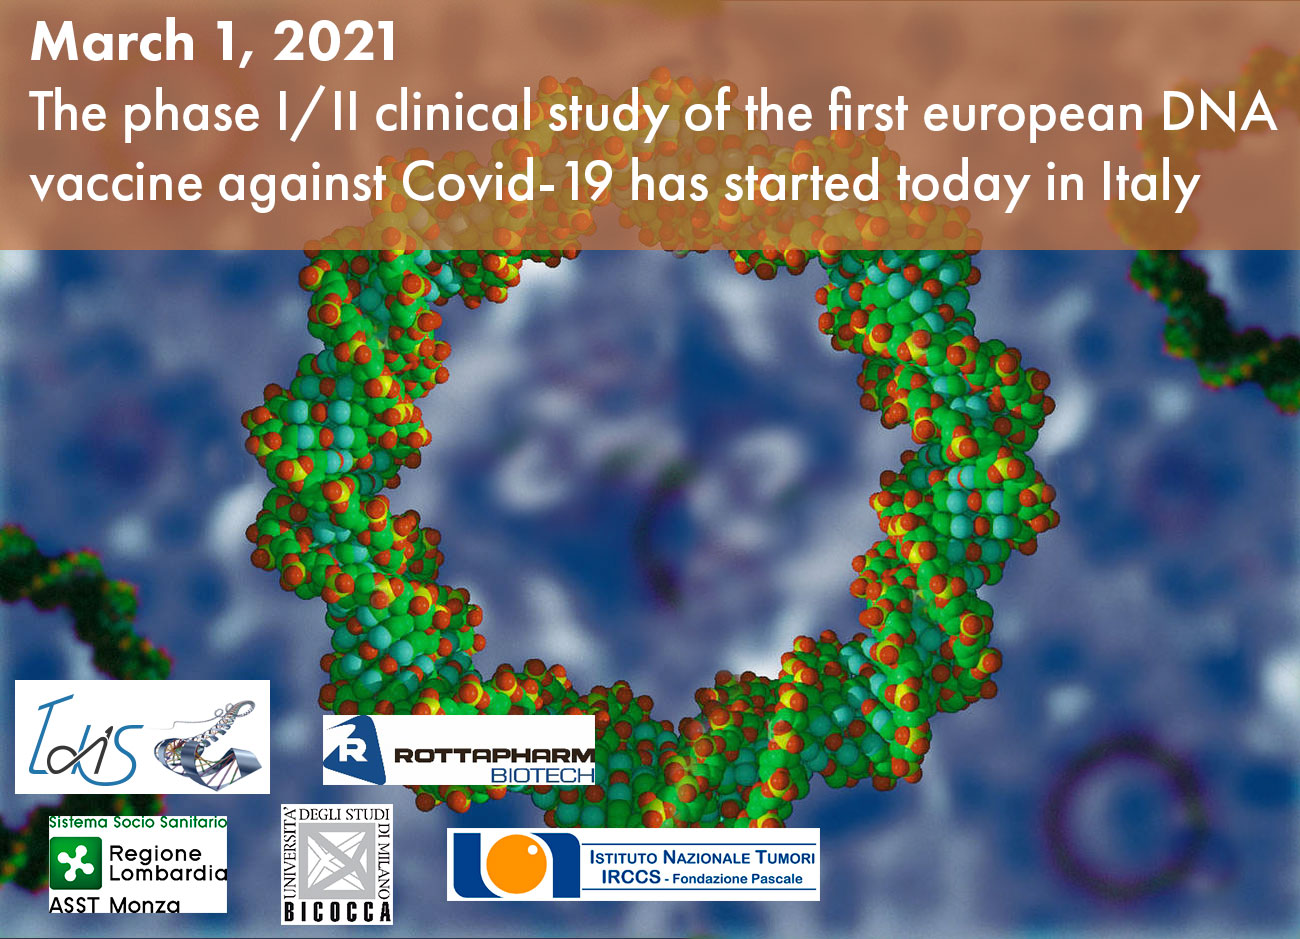 The phase I/II clinical study of the first european DNA vaccine against Covid-19 has started today in Italy